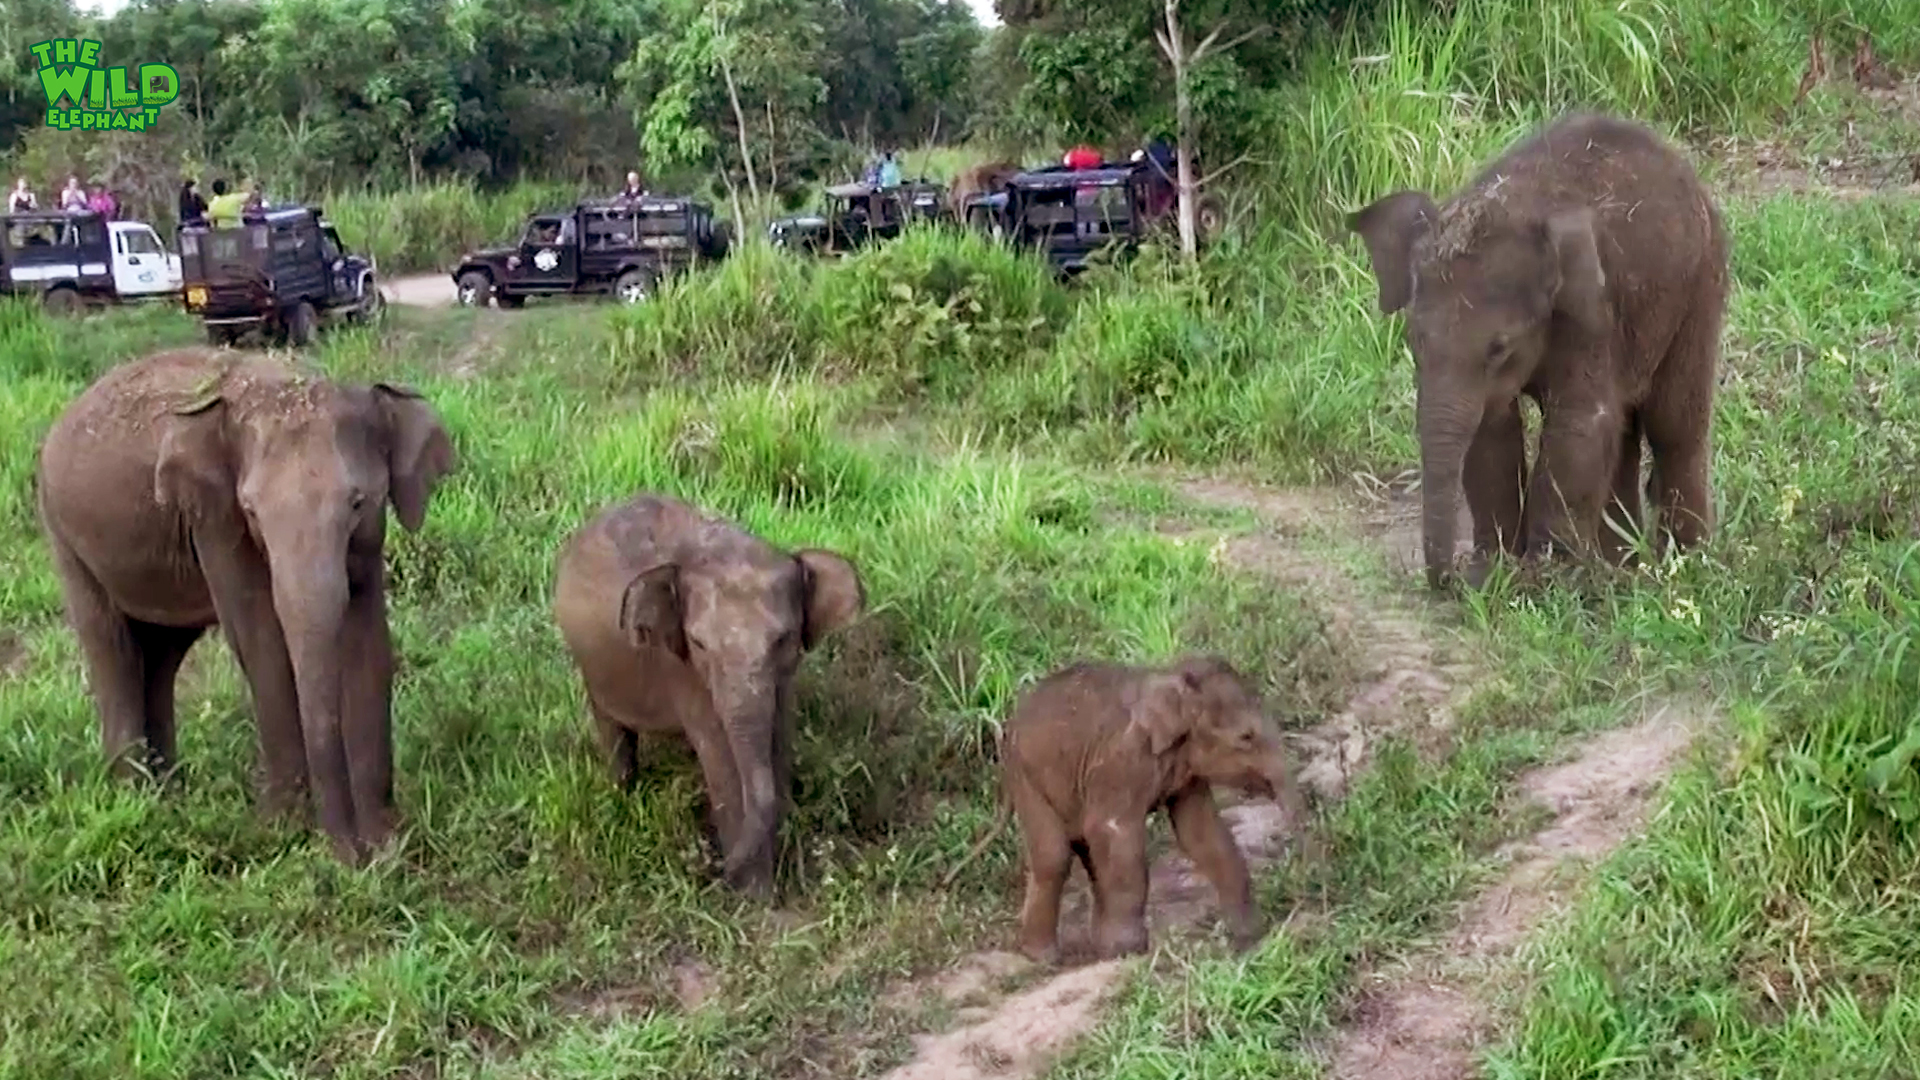 a cute baby elephant is hurt waiting for medical officers wild